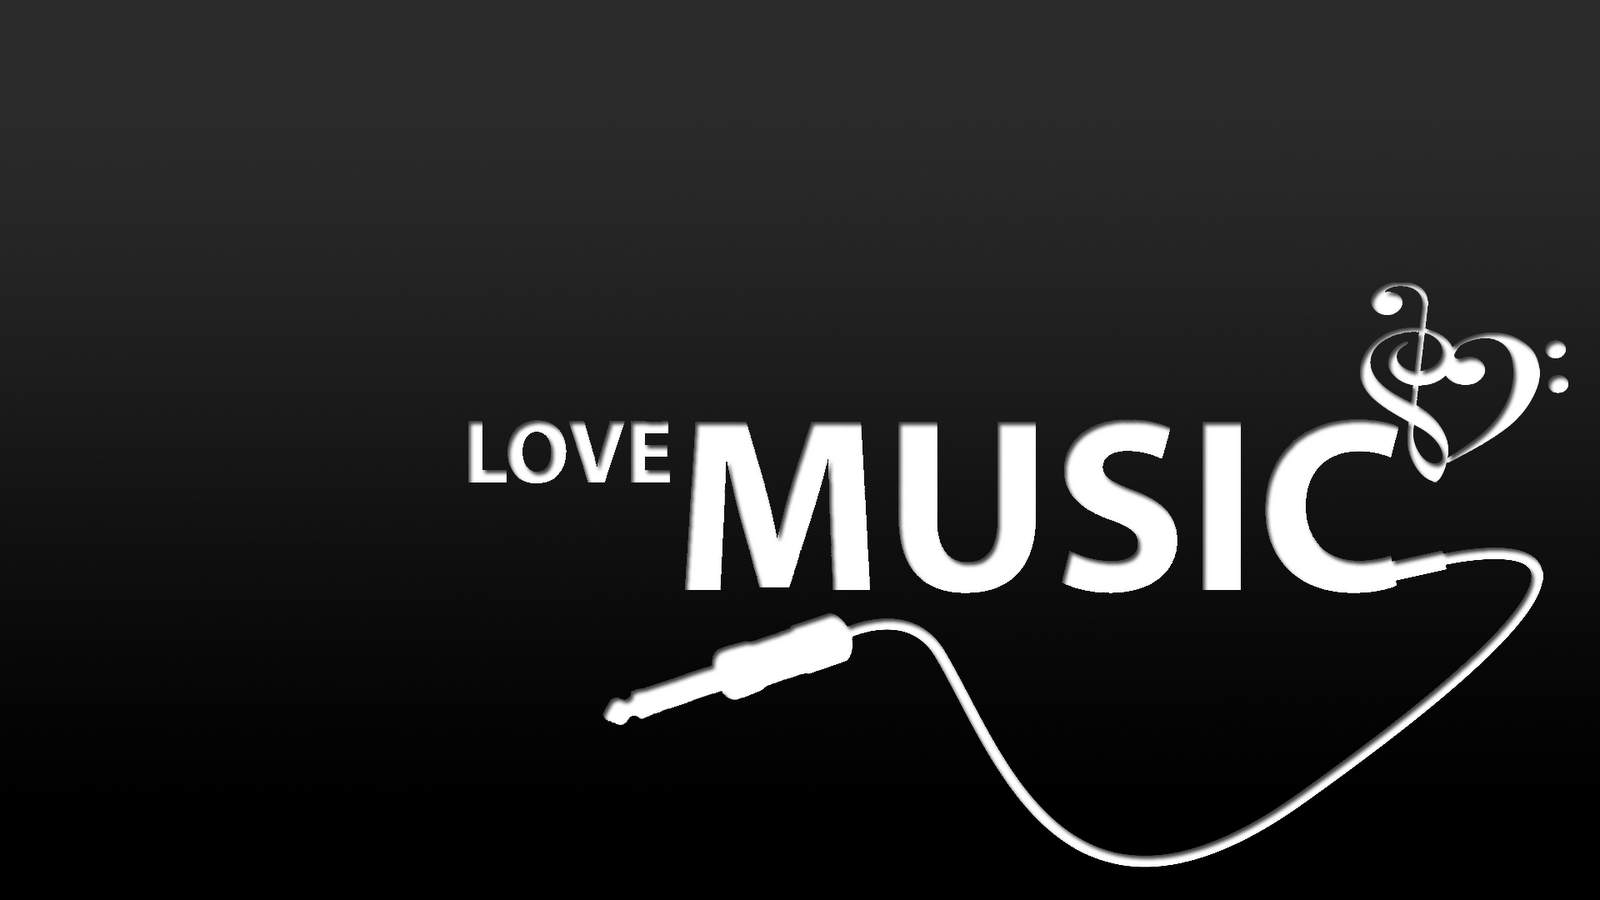 I Love Music Wallpaper Hd Image Wallpaper Collections